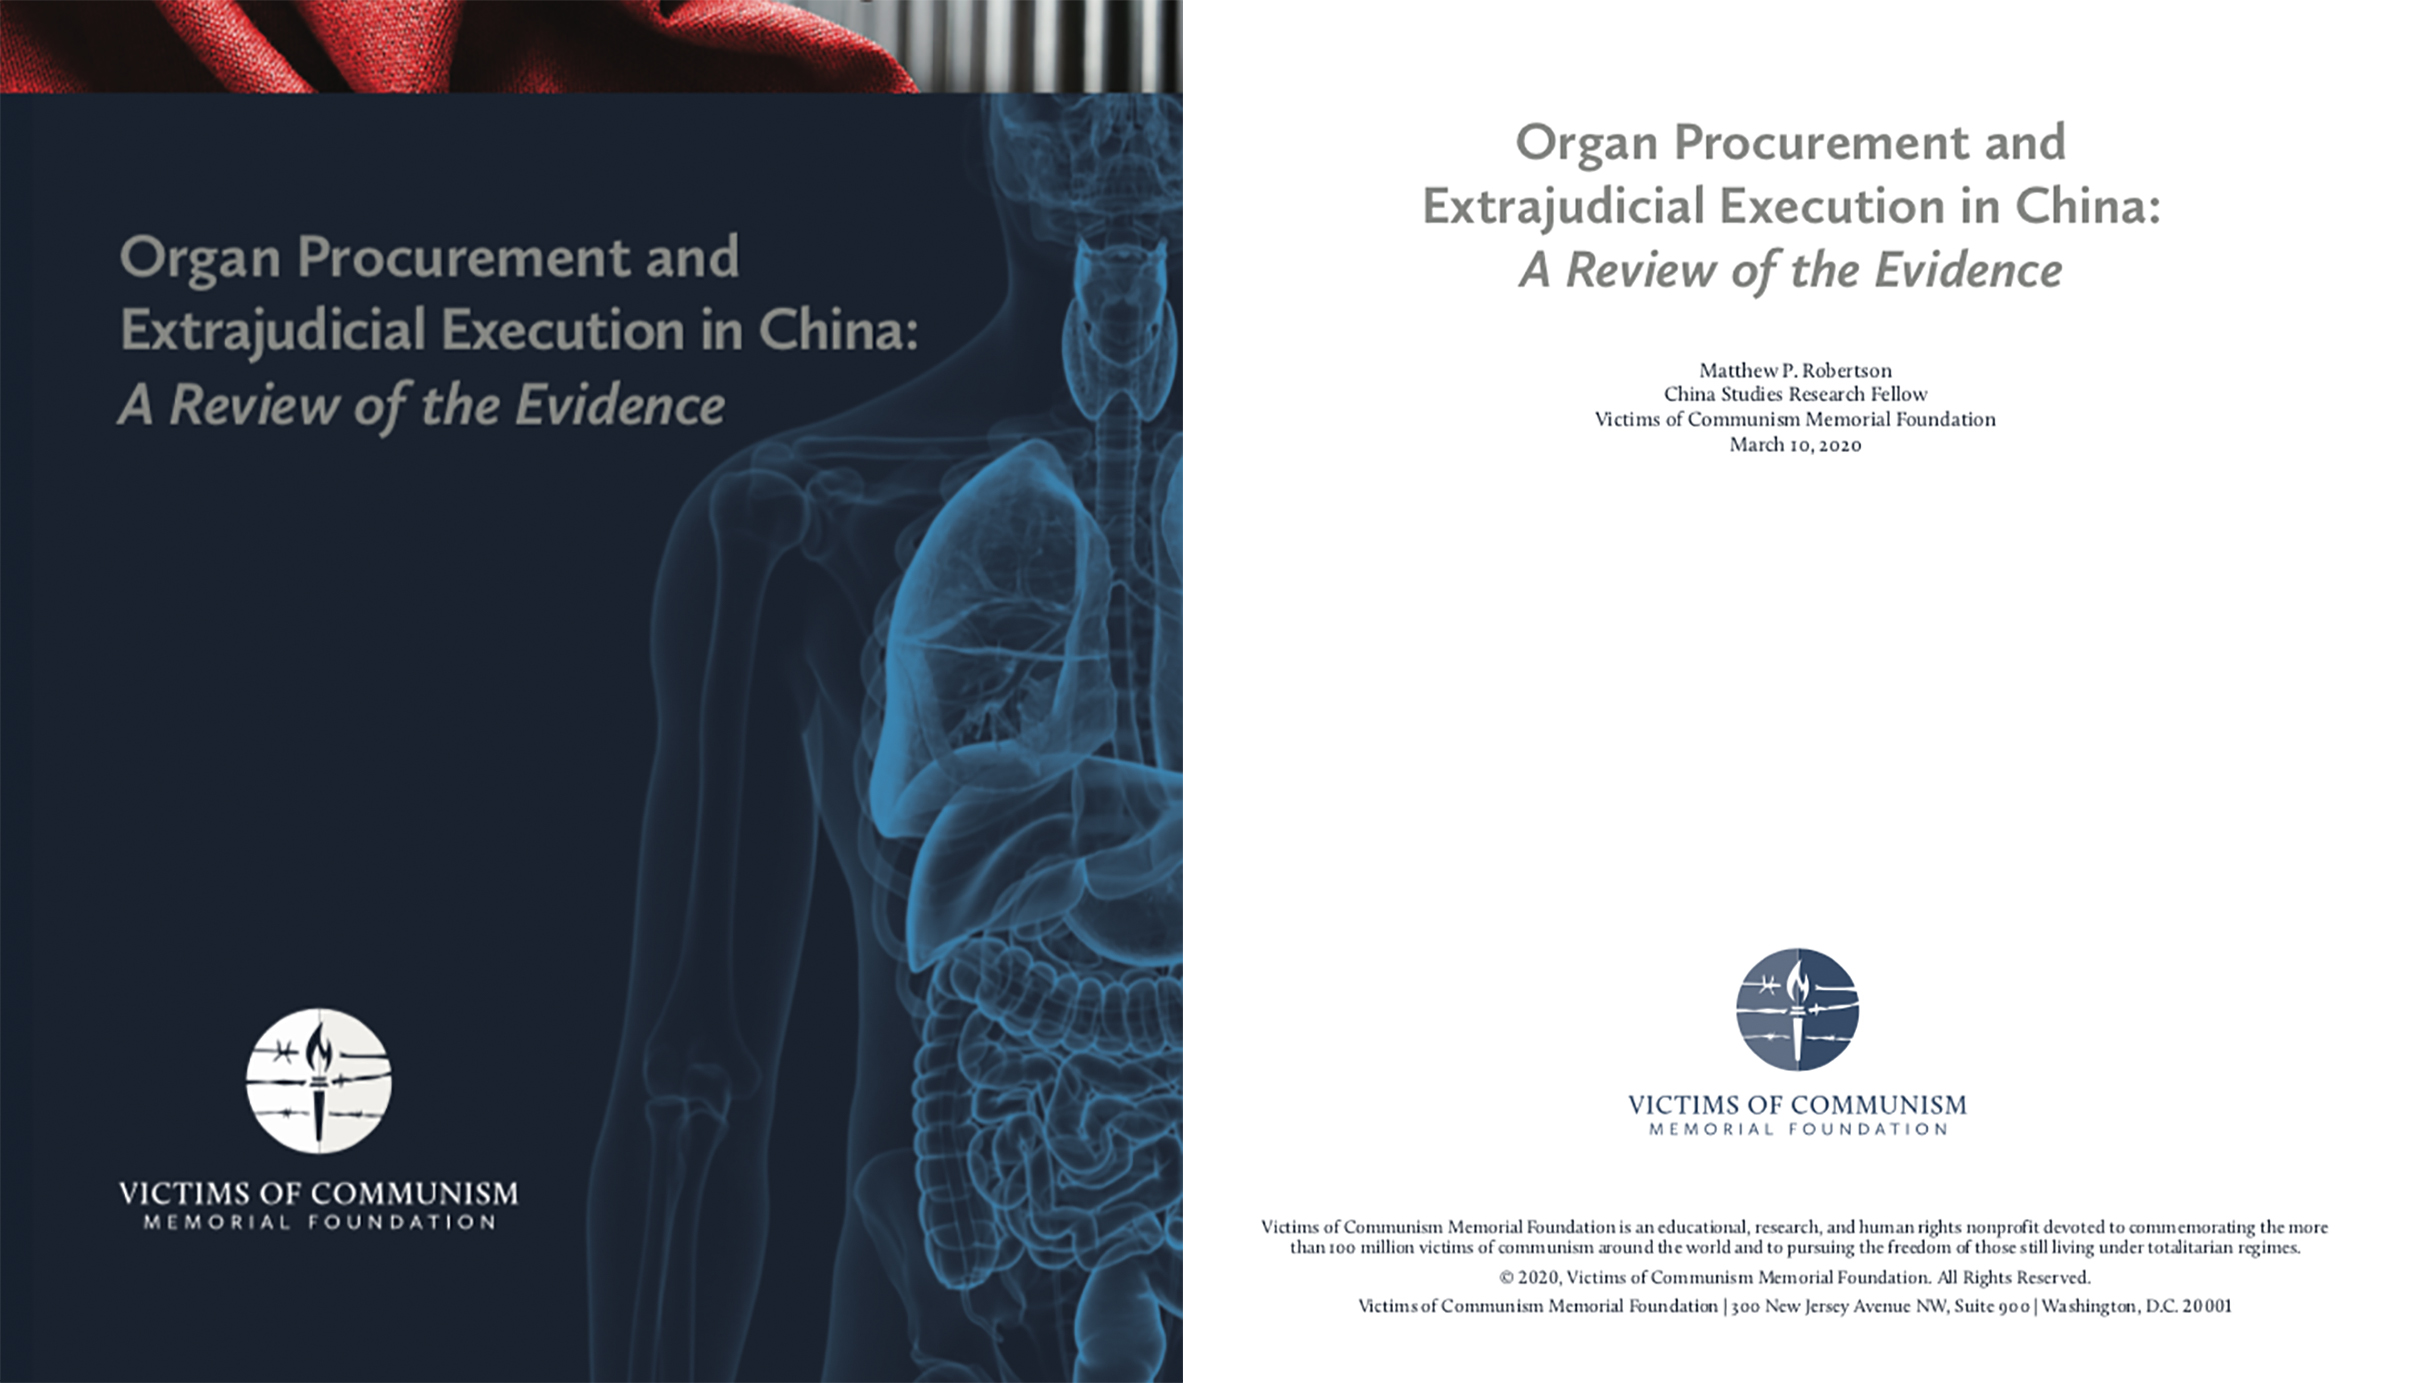 VOC-Report-Organ Procurement and Extrajudicial Execution in China